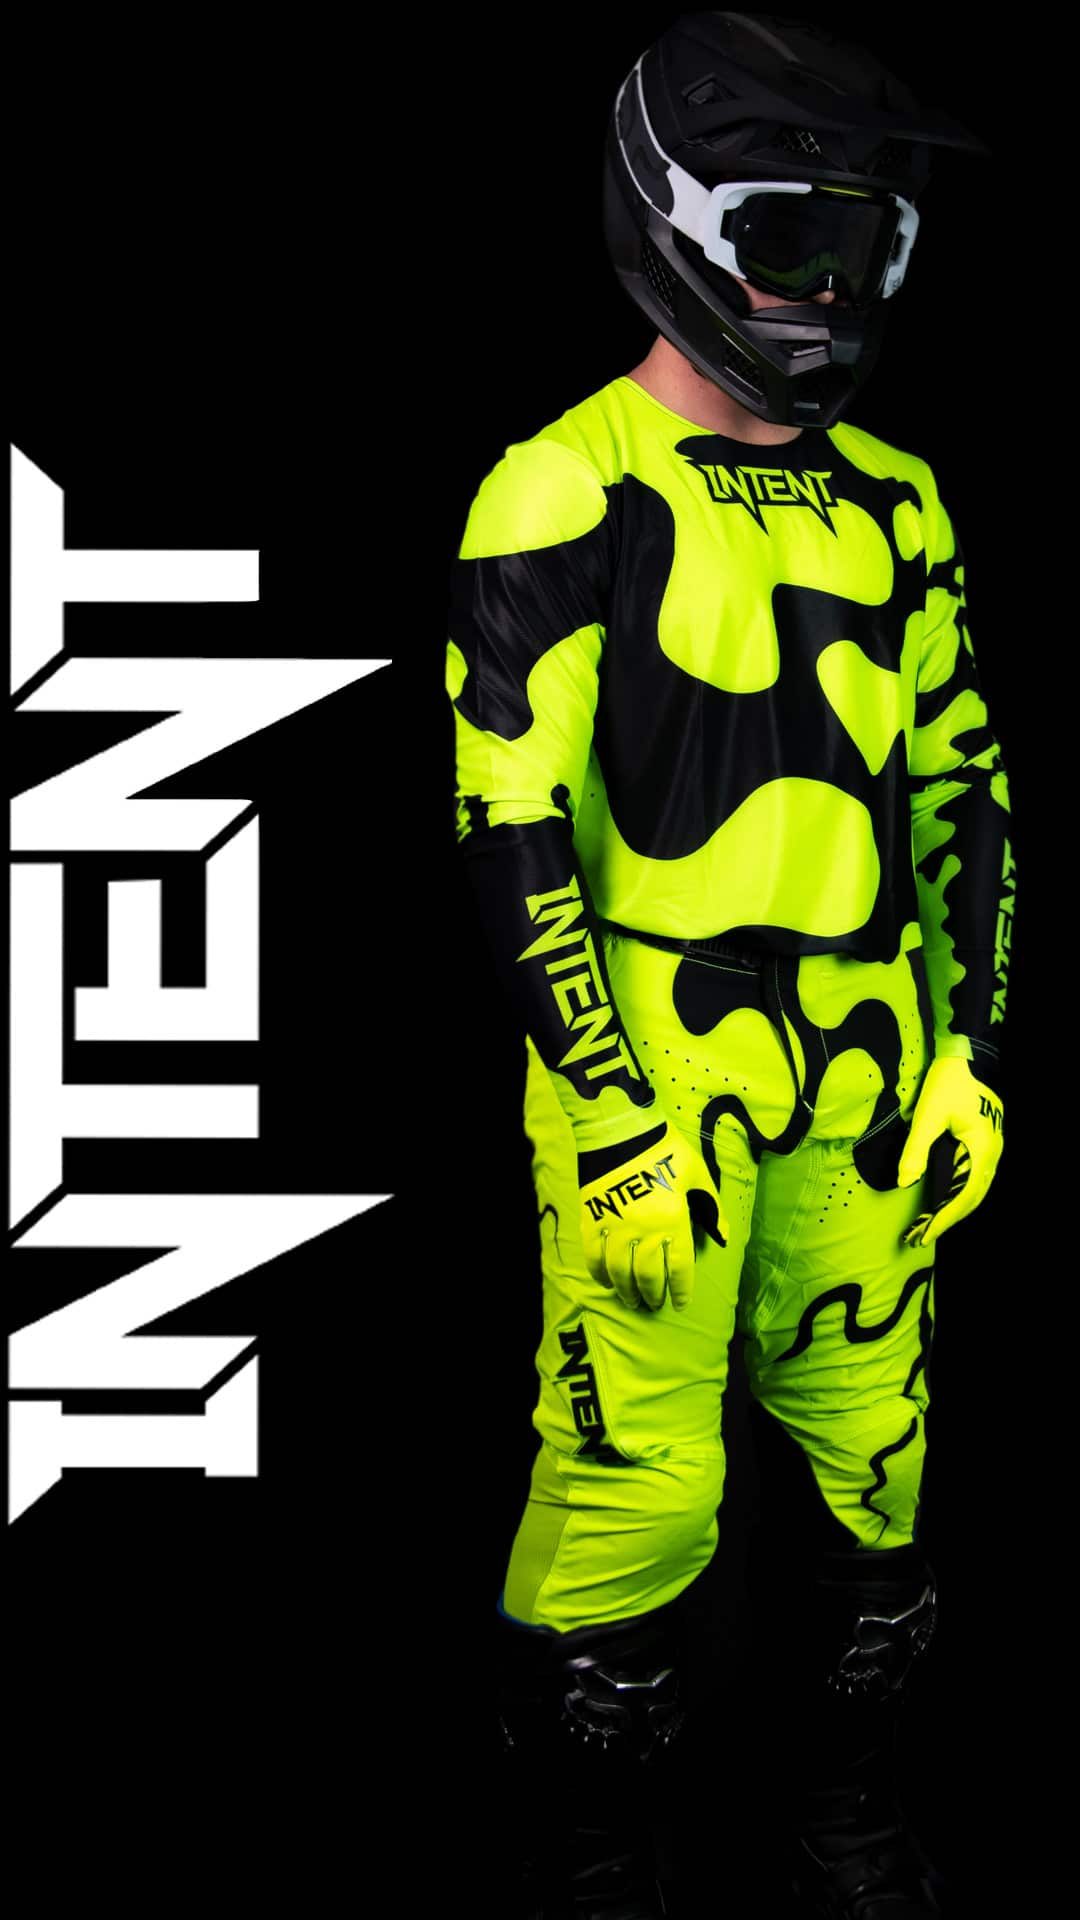 Infinite Moto Gear Set | Jigsaw - FluoroYellow/Black Motocross Gear